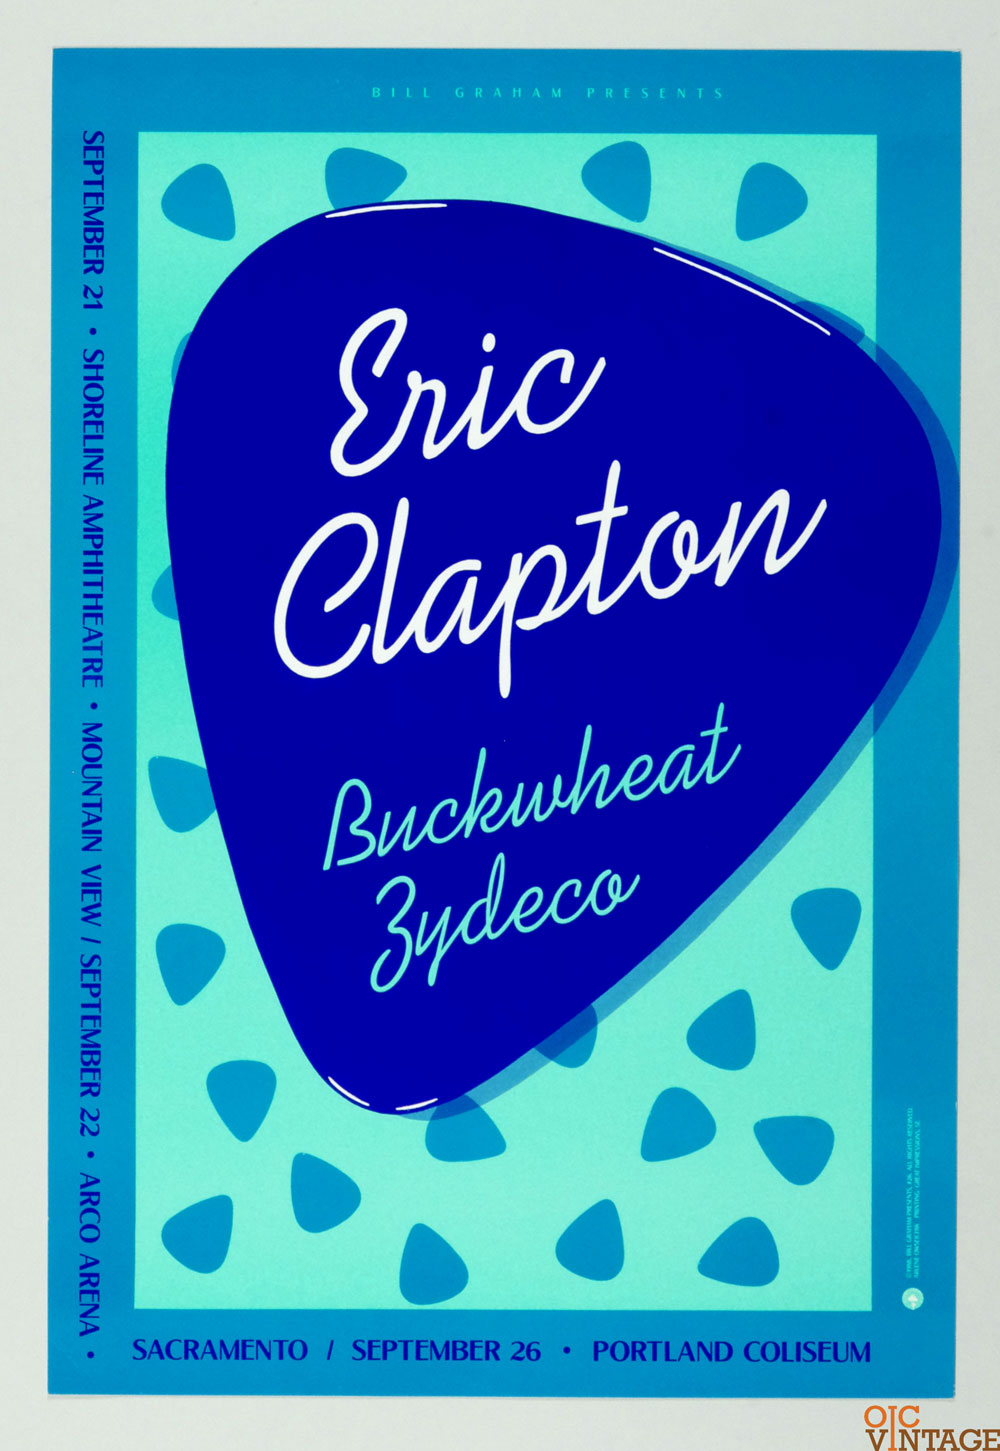 Bill Graham Presents Poster 1988 Sep 21 Eric Clapton #26